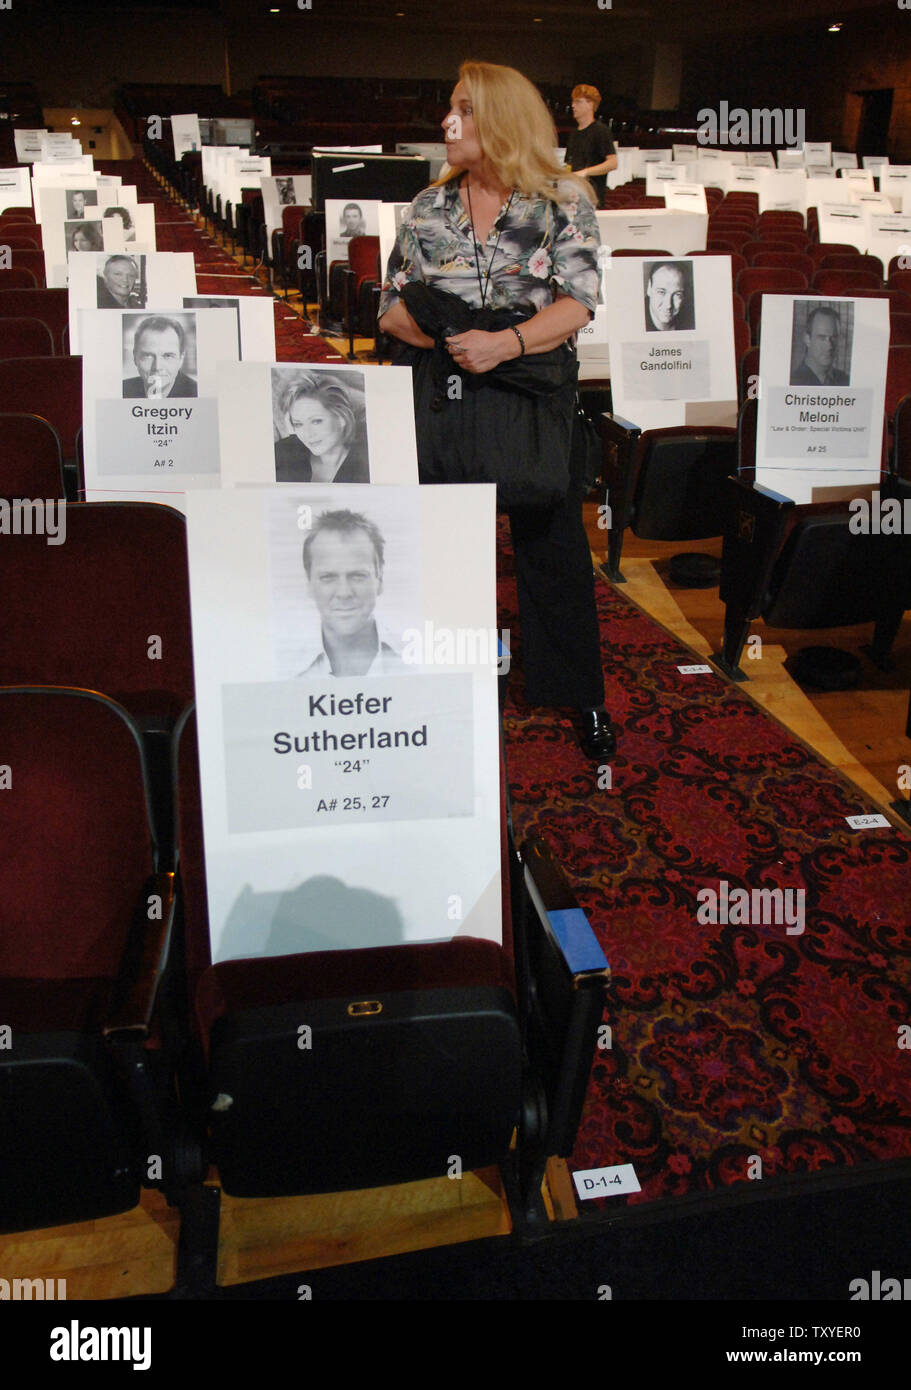 Celebrity seat cards mark the Shrine Auditorium which is being prepared for the 58th annual Primetime Emmy Awards in Los Angeles on August 25, 2006. The award show airs Sunday, Aug. 27. (UPI Photo/Jim Ruymen) - Stock Image